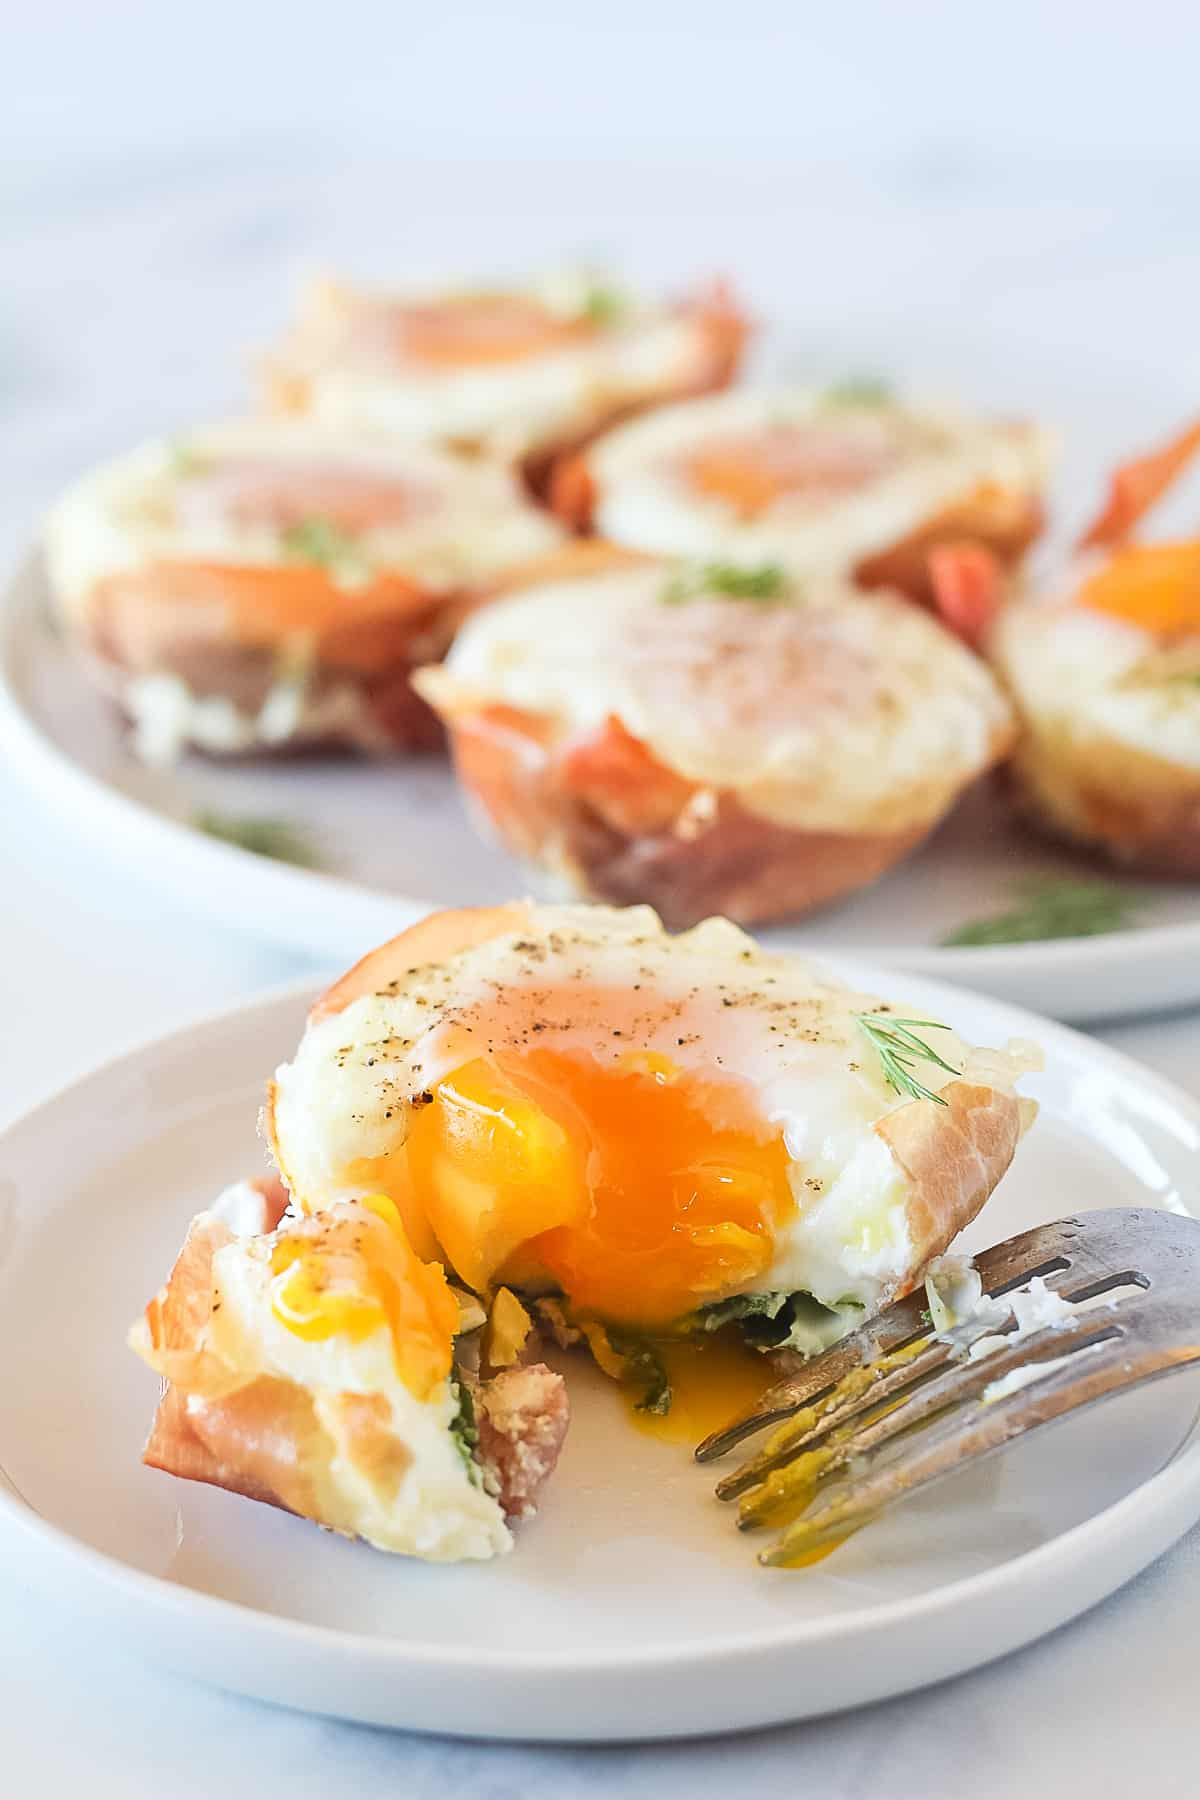 One prosciutto, spinach egg cup being cut into with a fork on a white plate and more egg muffins in the background.